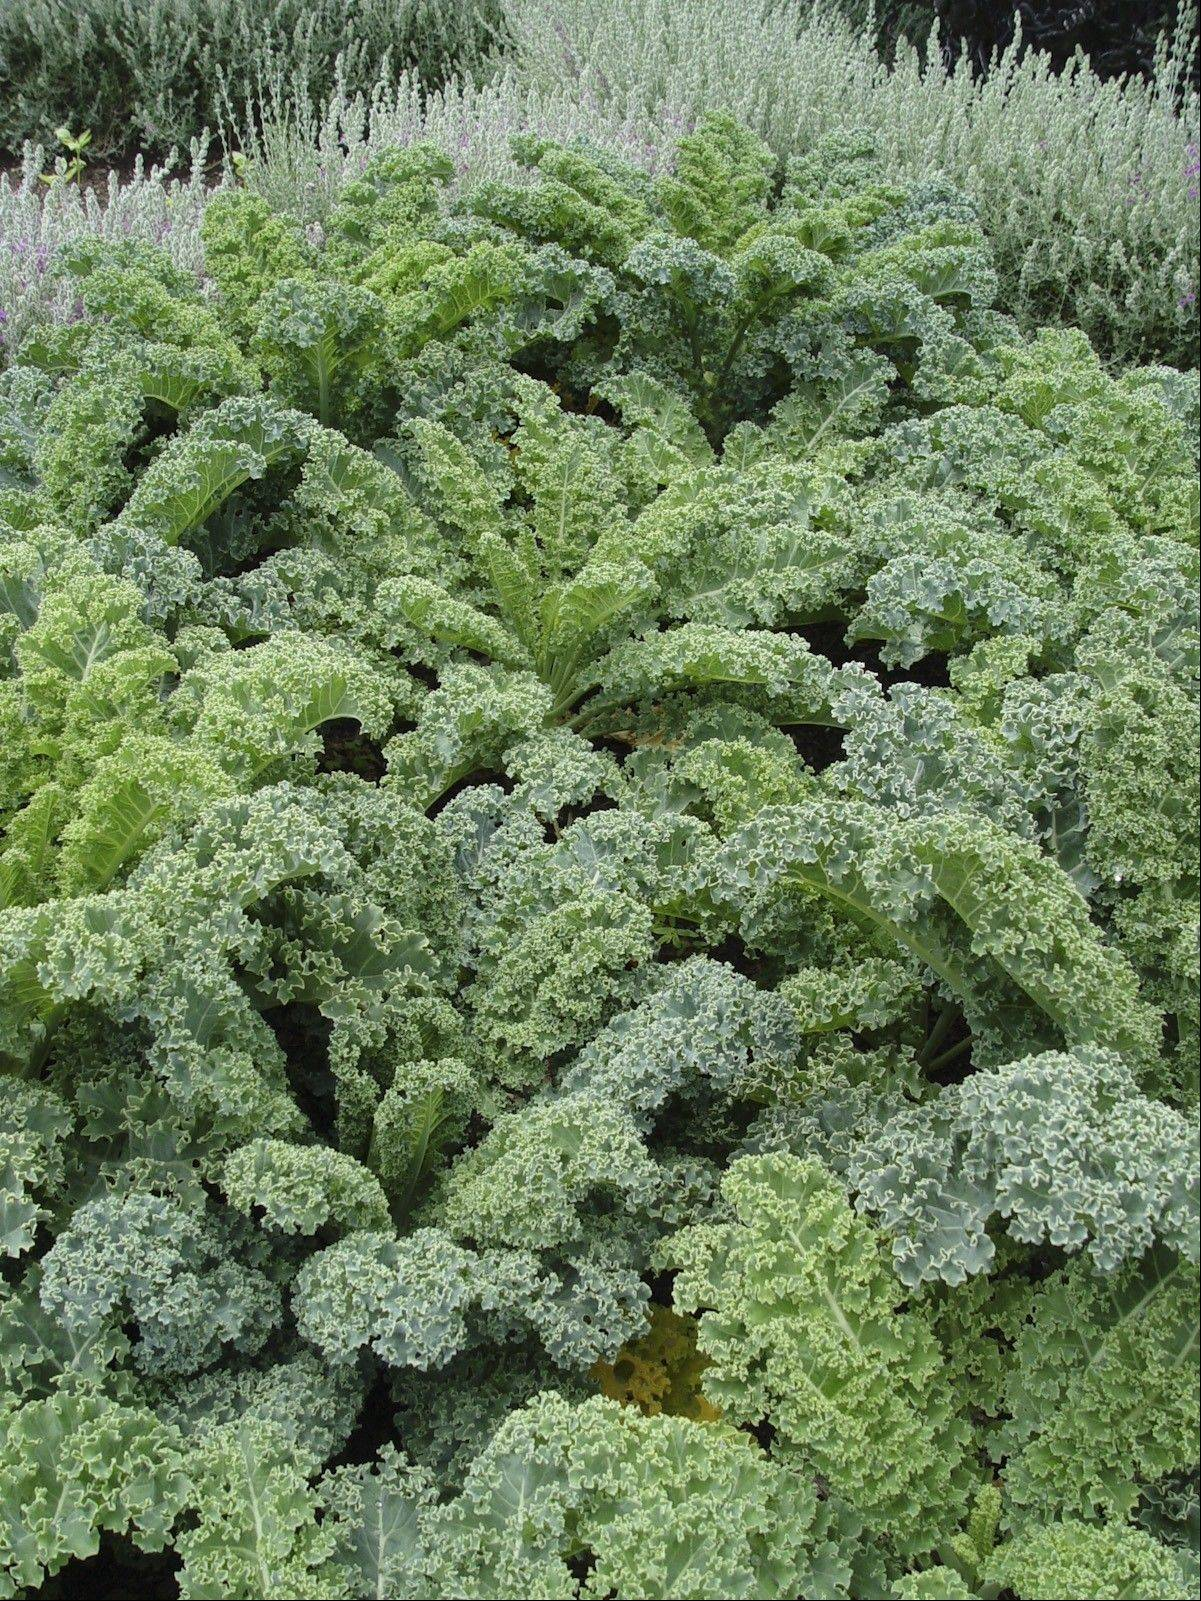 The curled leaves of kale often suffer woolly aphids in the hot months.